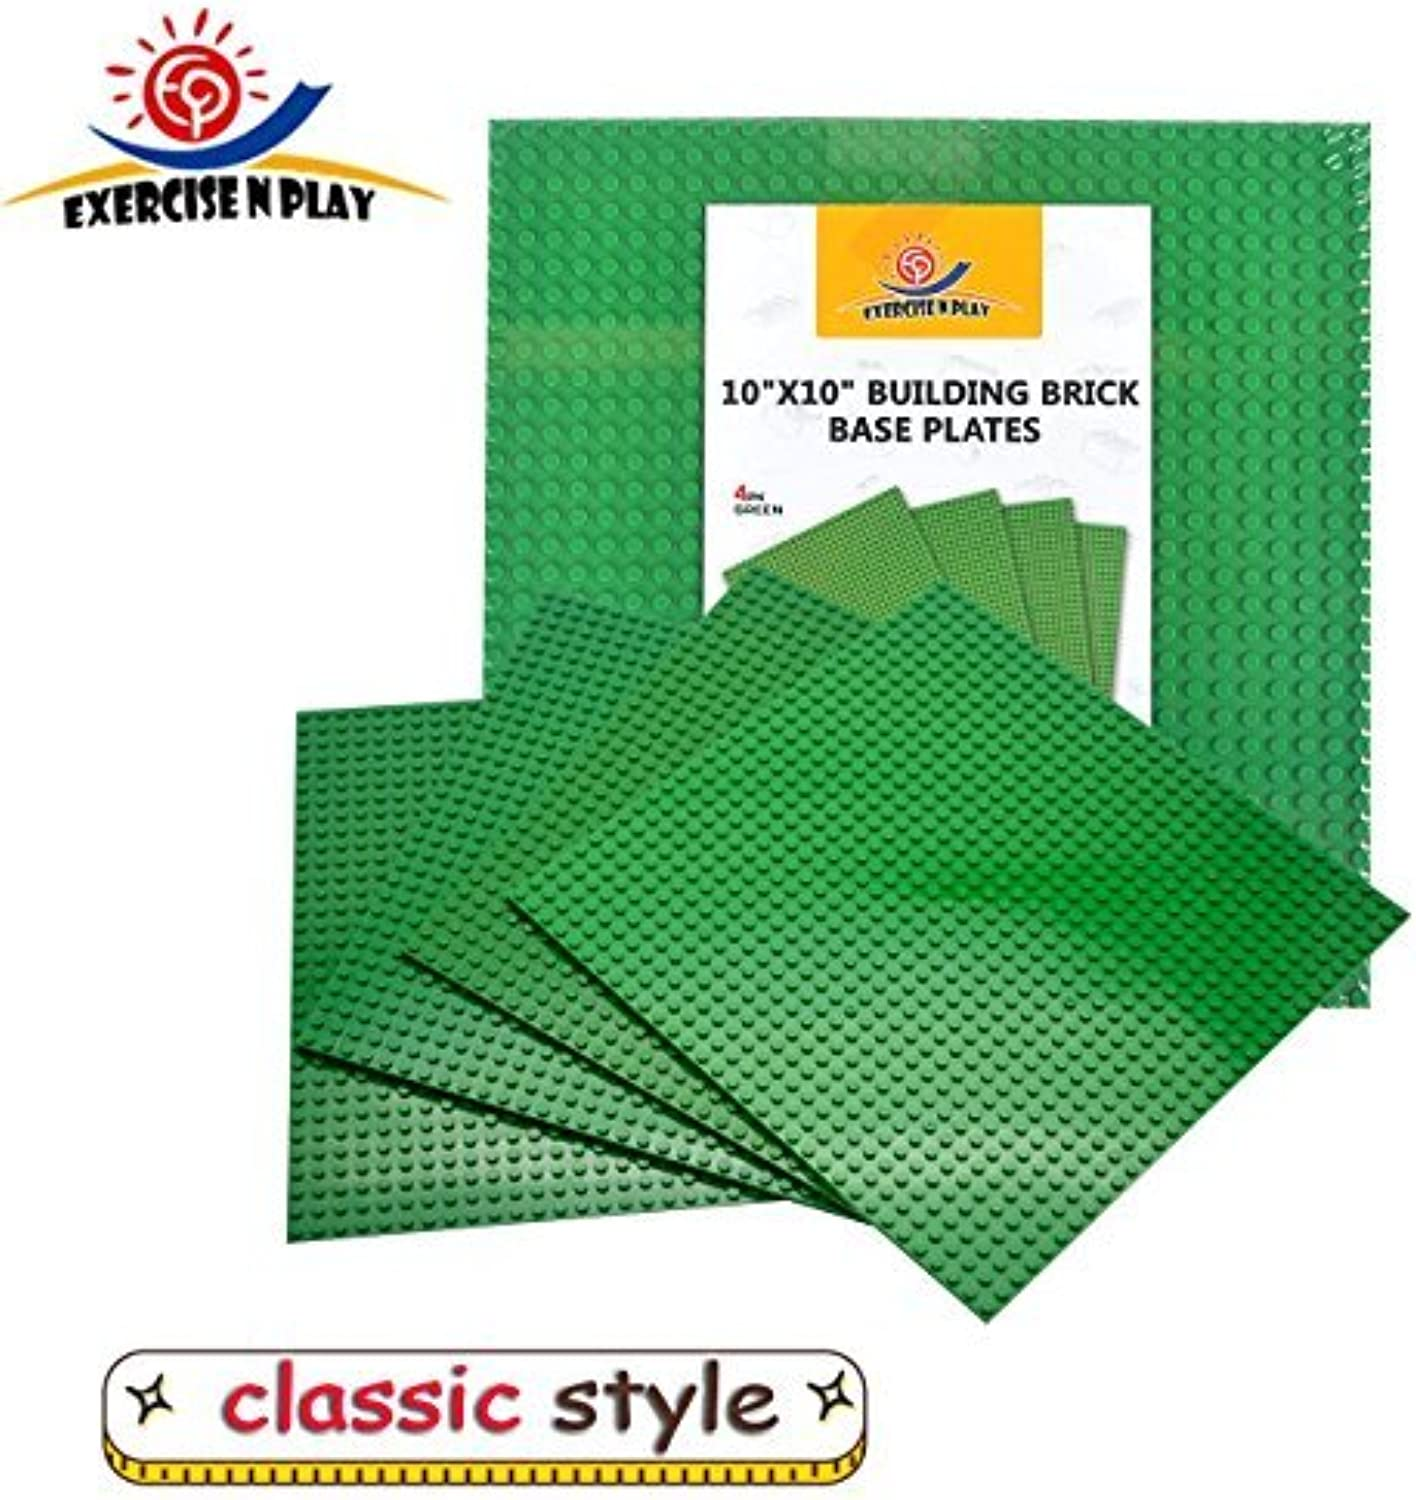 Green Building Brick Base Plates 4 Pack Compatible with all Major Brands